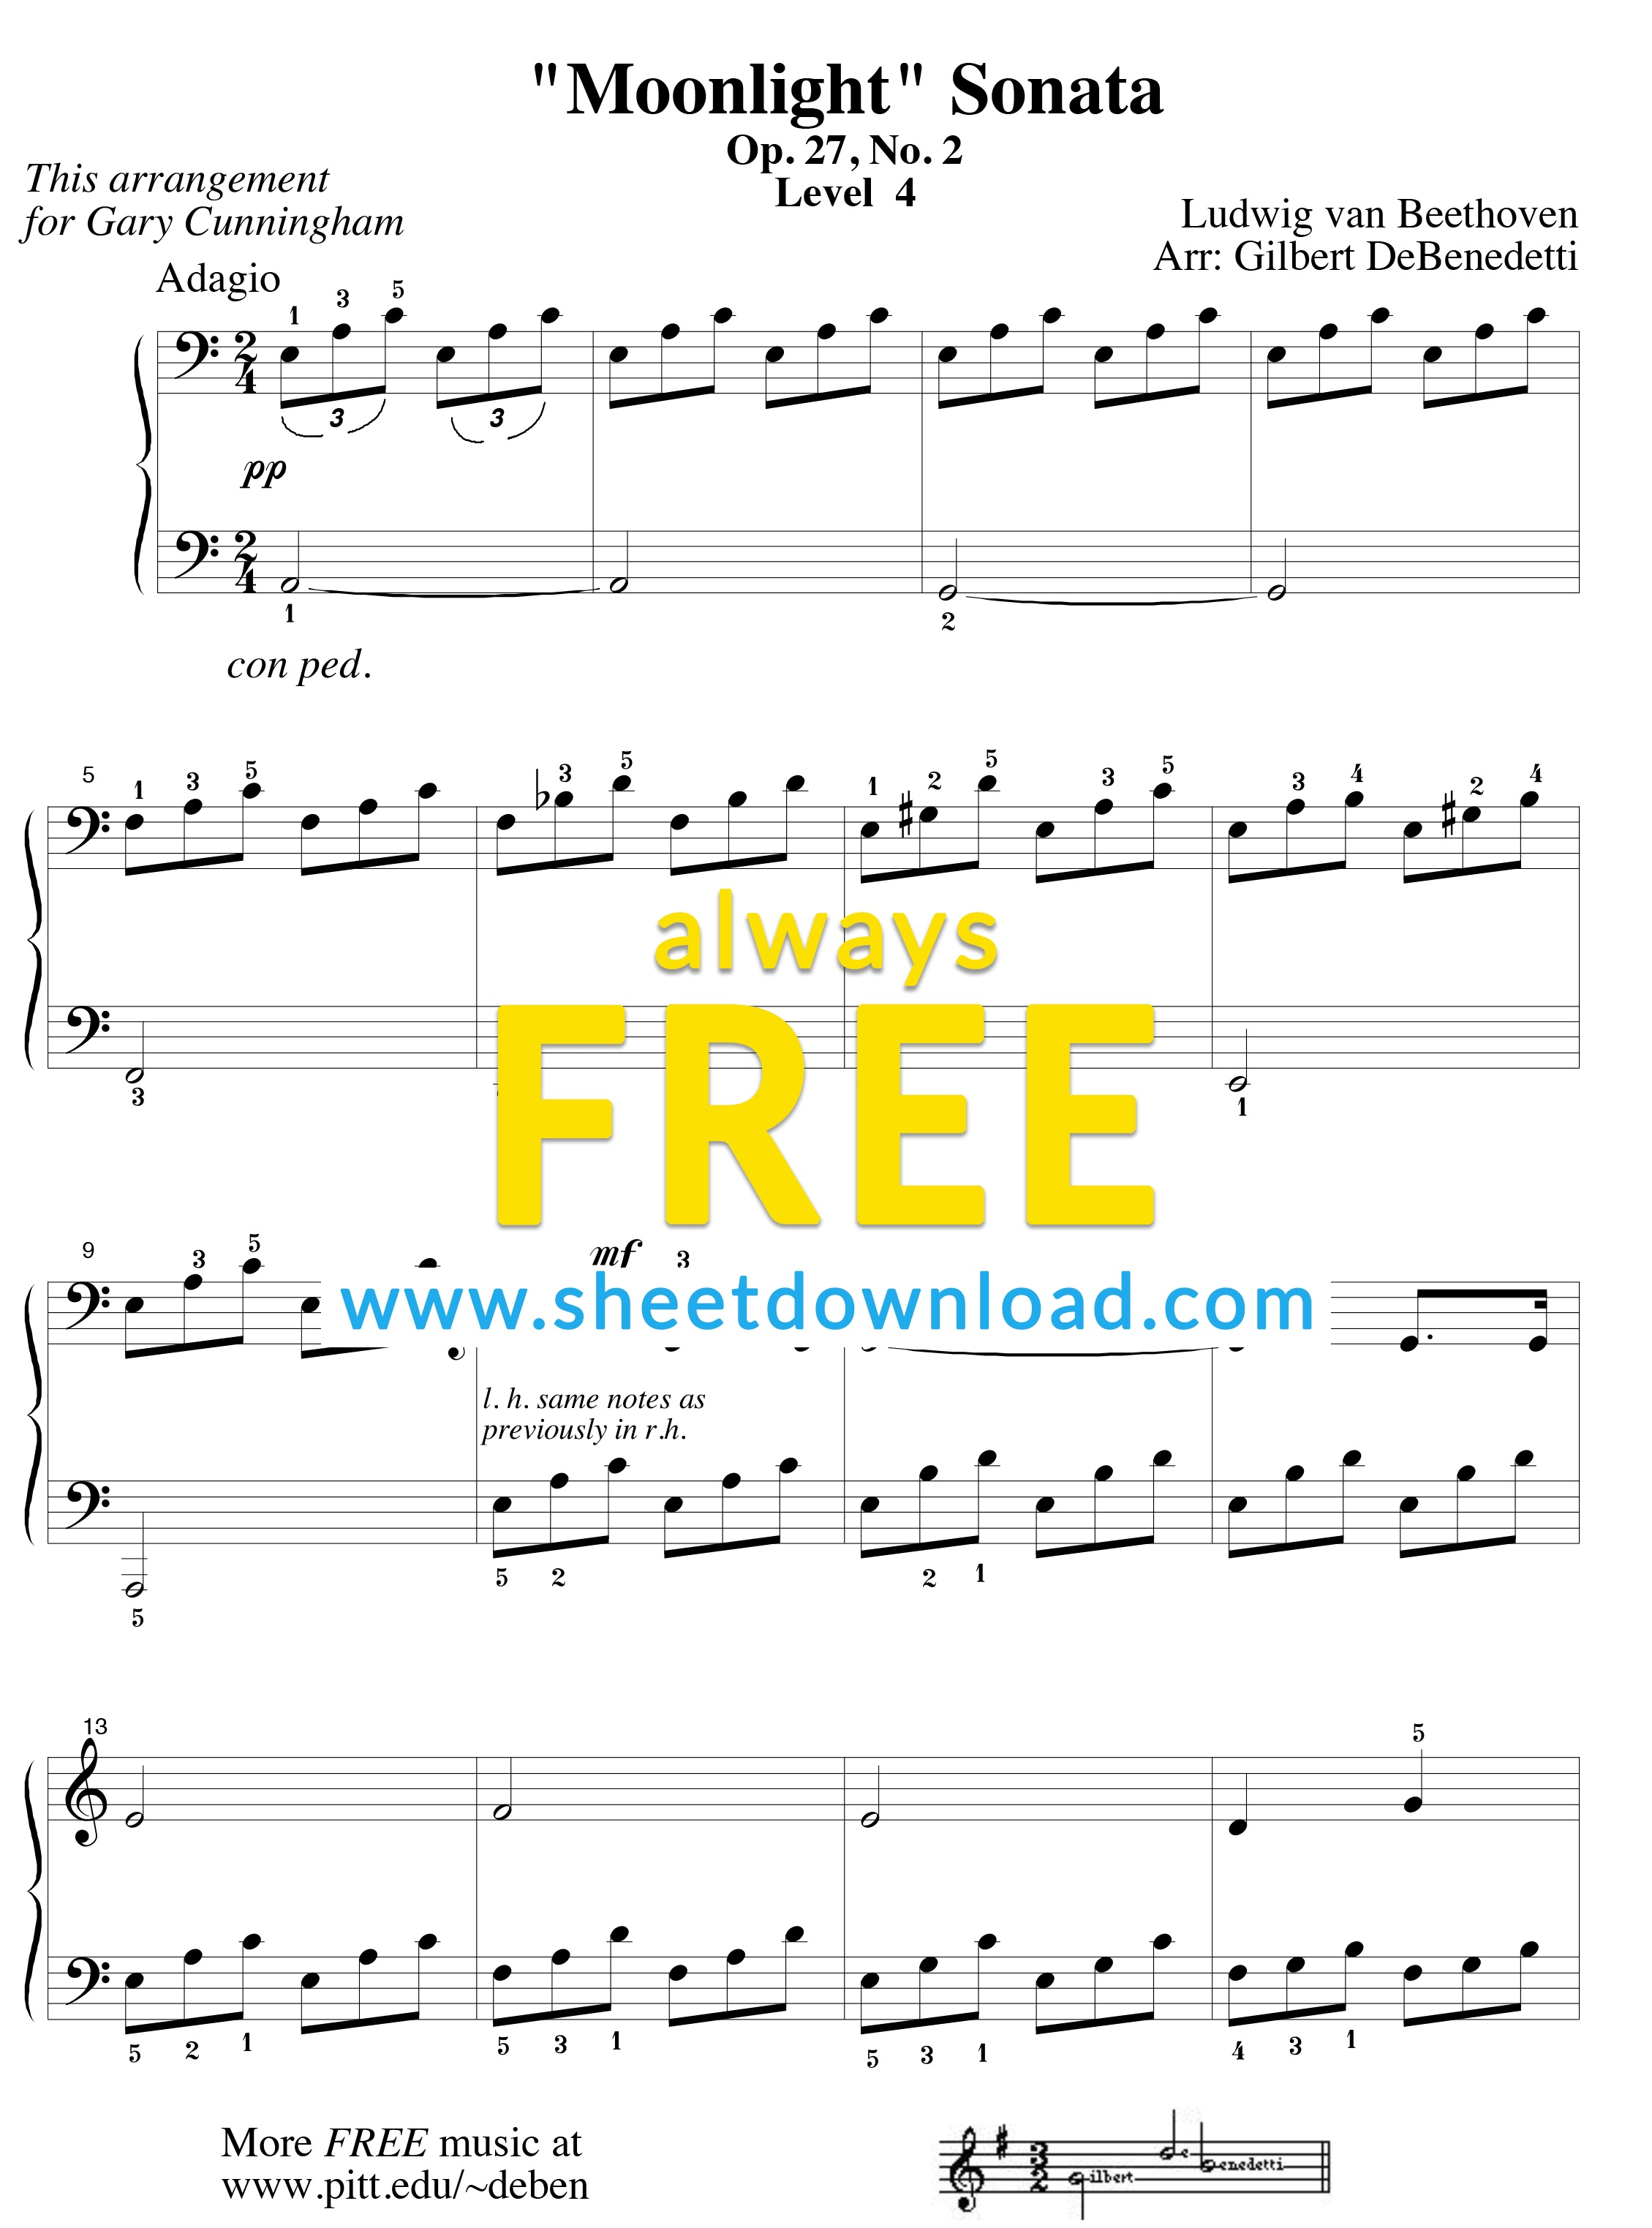 Top 100 Popular Piano Sheets Downloaded From Sheetdownload - Free Printable Classical Sheet Music For Piano